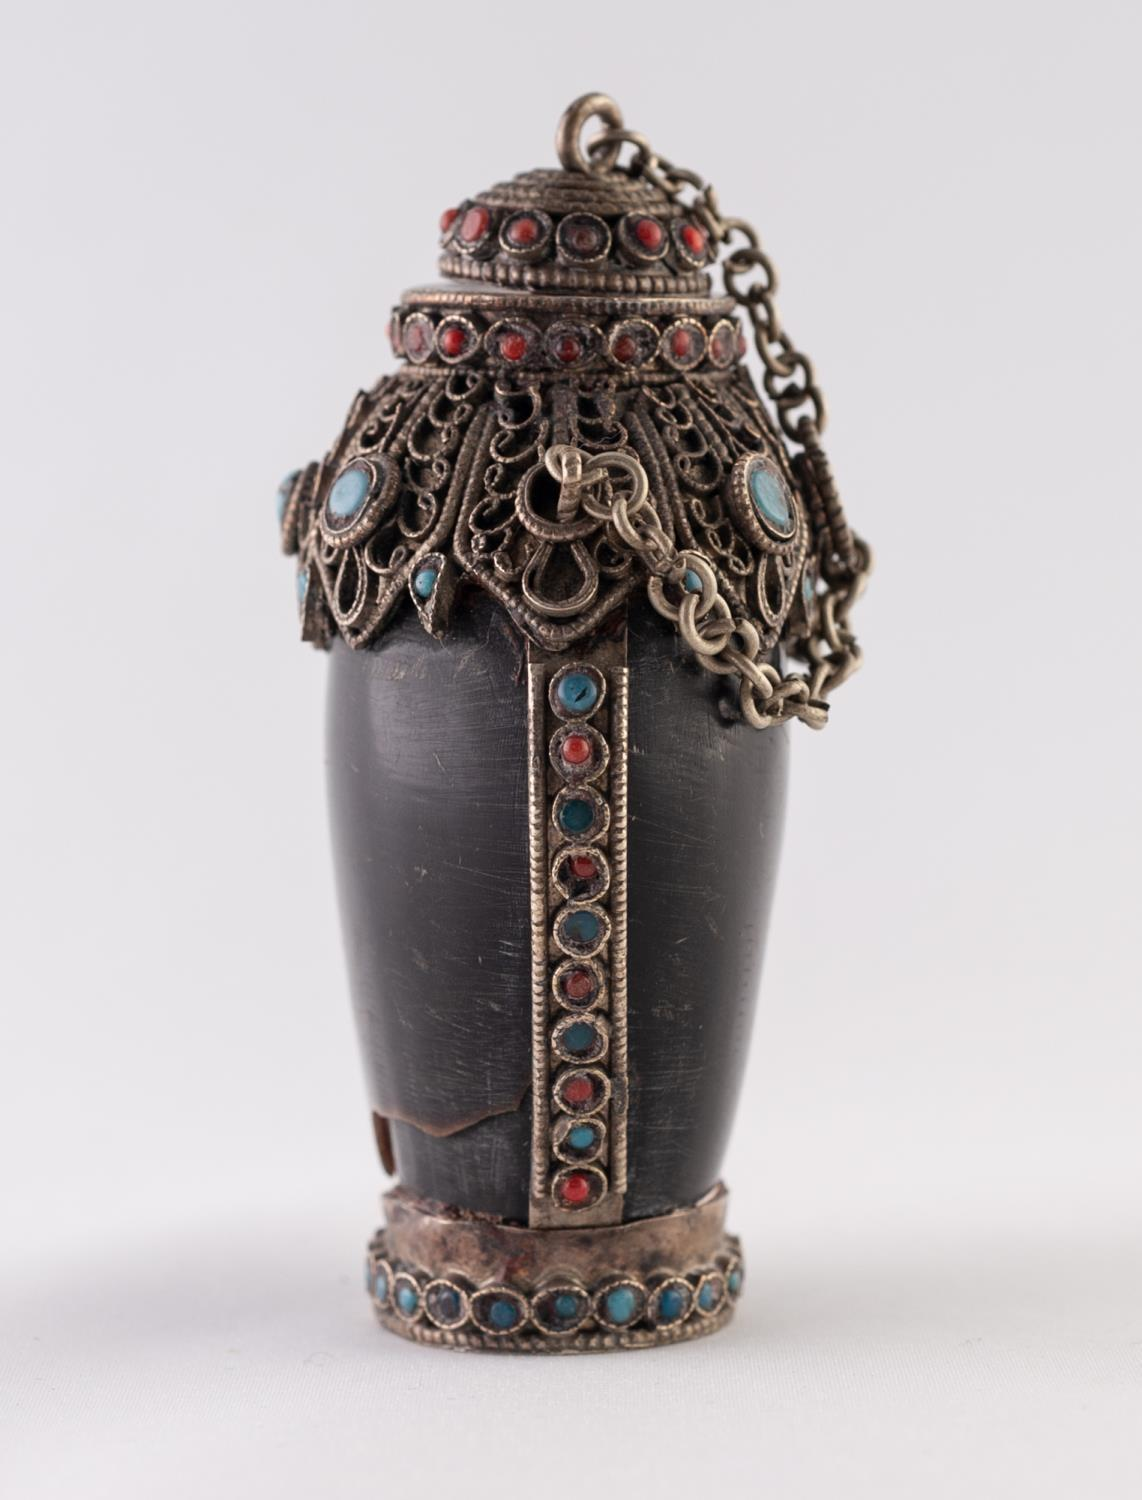 Lot 35 - A POSSIBLY HORN, WHITE METAL AND FAUX JEWEL ENCRUSTED SNUFF BOTTLE, with chain attached stopper